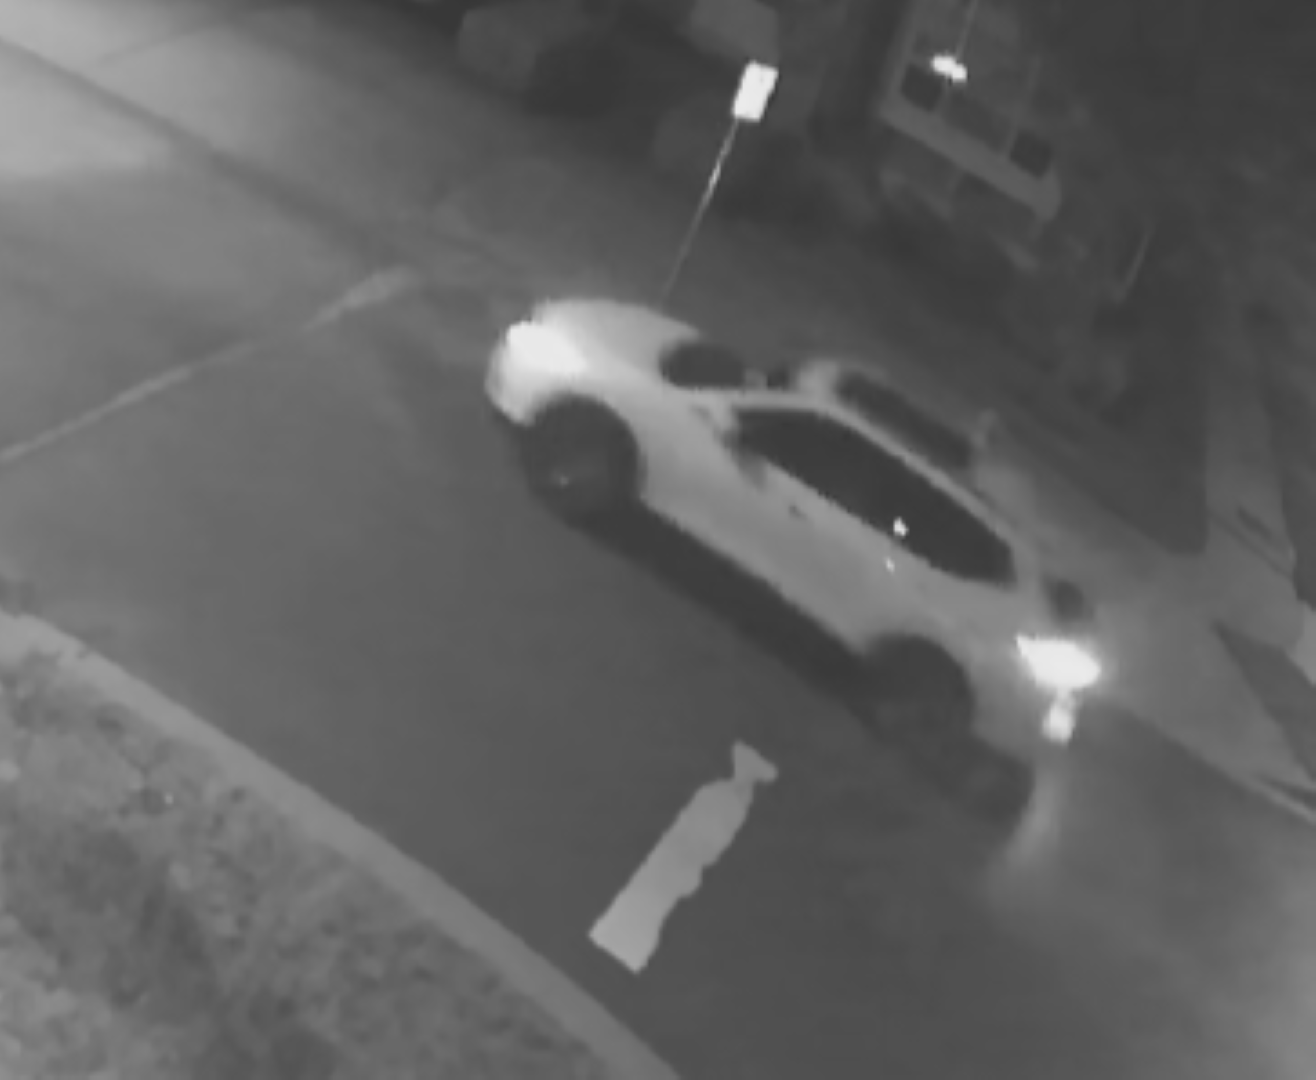 Surrey RCMP release photo of vehicle observed in the area of October 3rd shooting